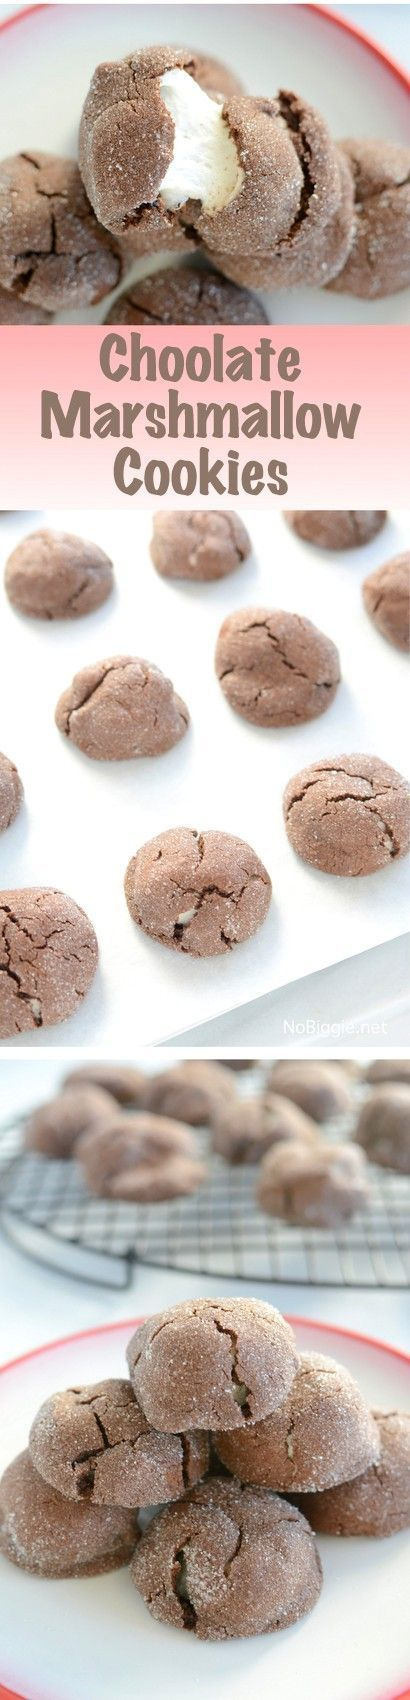 chocolate marshmallow cookies seriously the best cookies! | http://NoBiggie.net